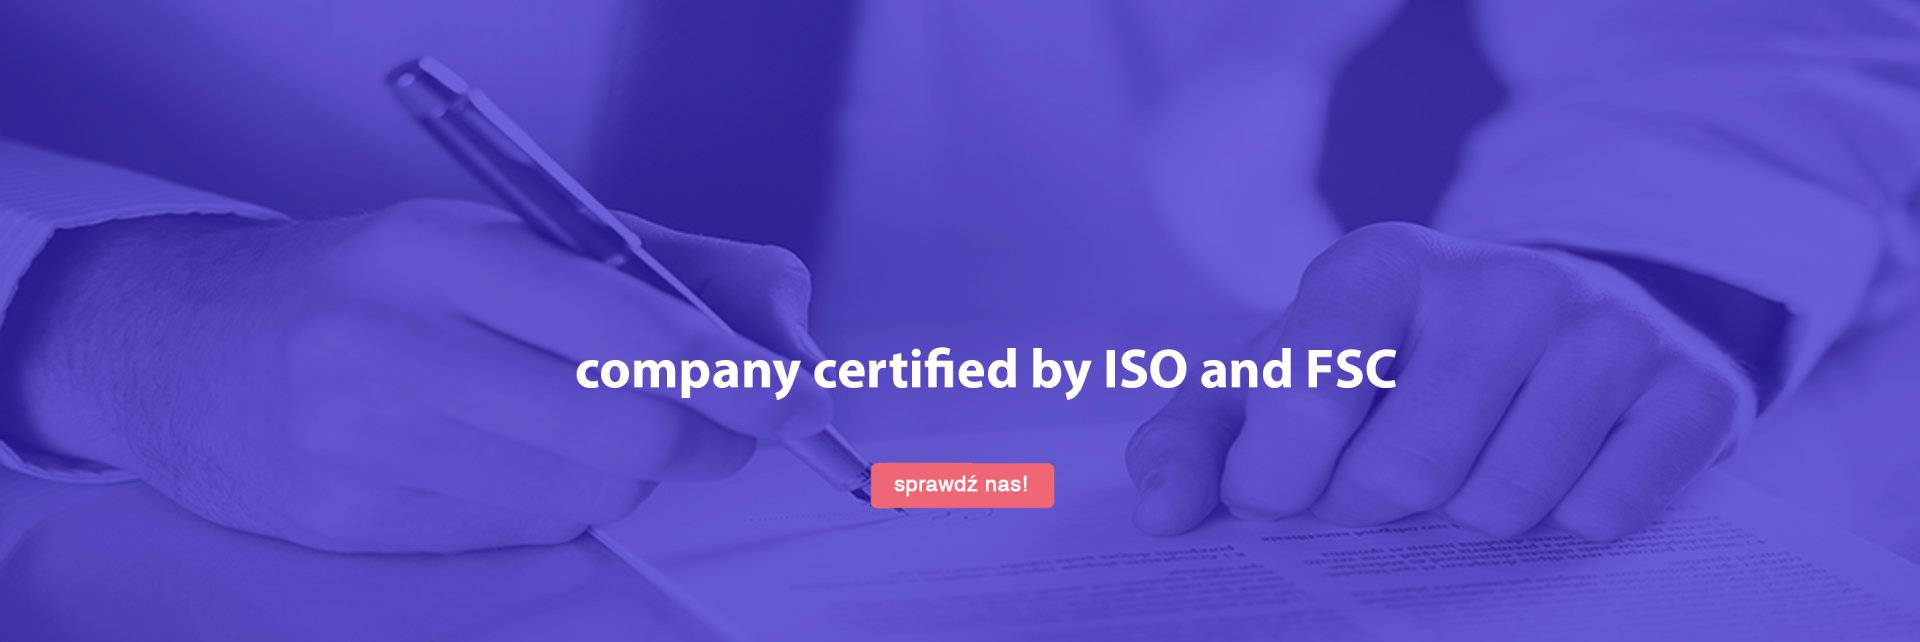 company certified by ISO and FSC